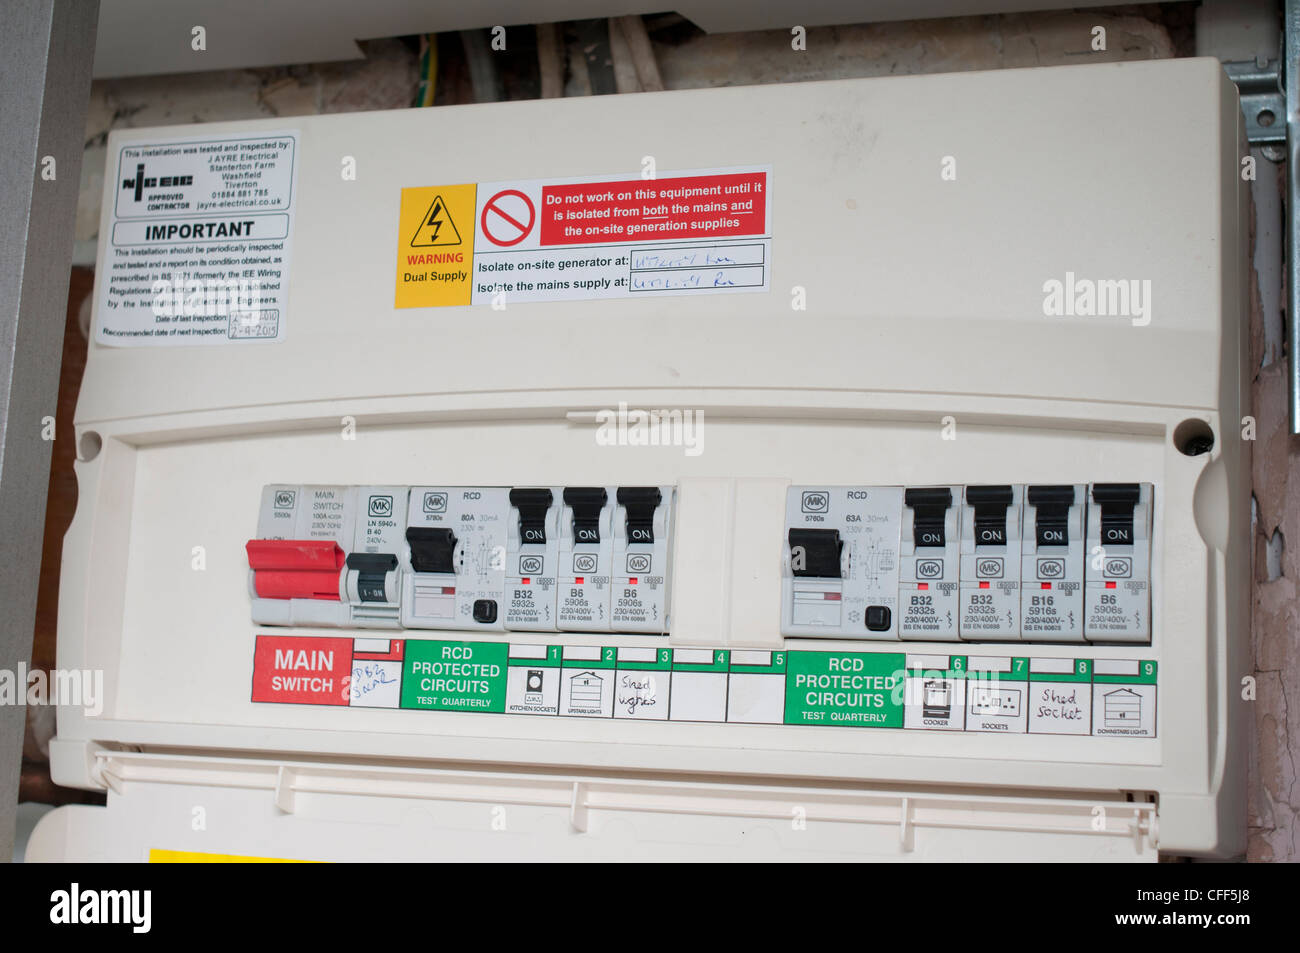 domestic fuse box CFF5J8 fuse box in house how to change a fuse in a breaker box \u2022 wiring replacing fuse box with circuit breaker cost at crackthecode.co